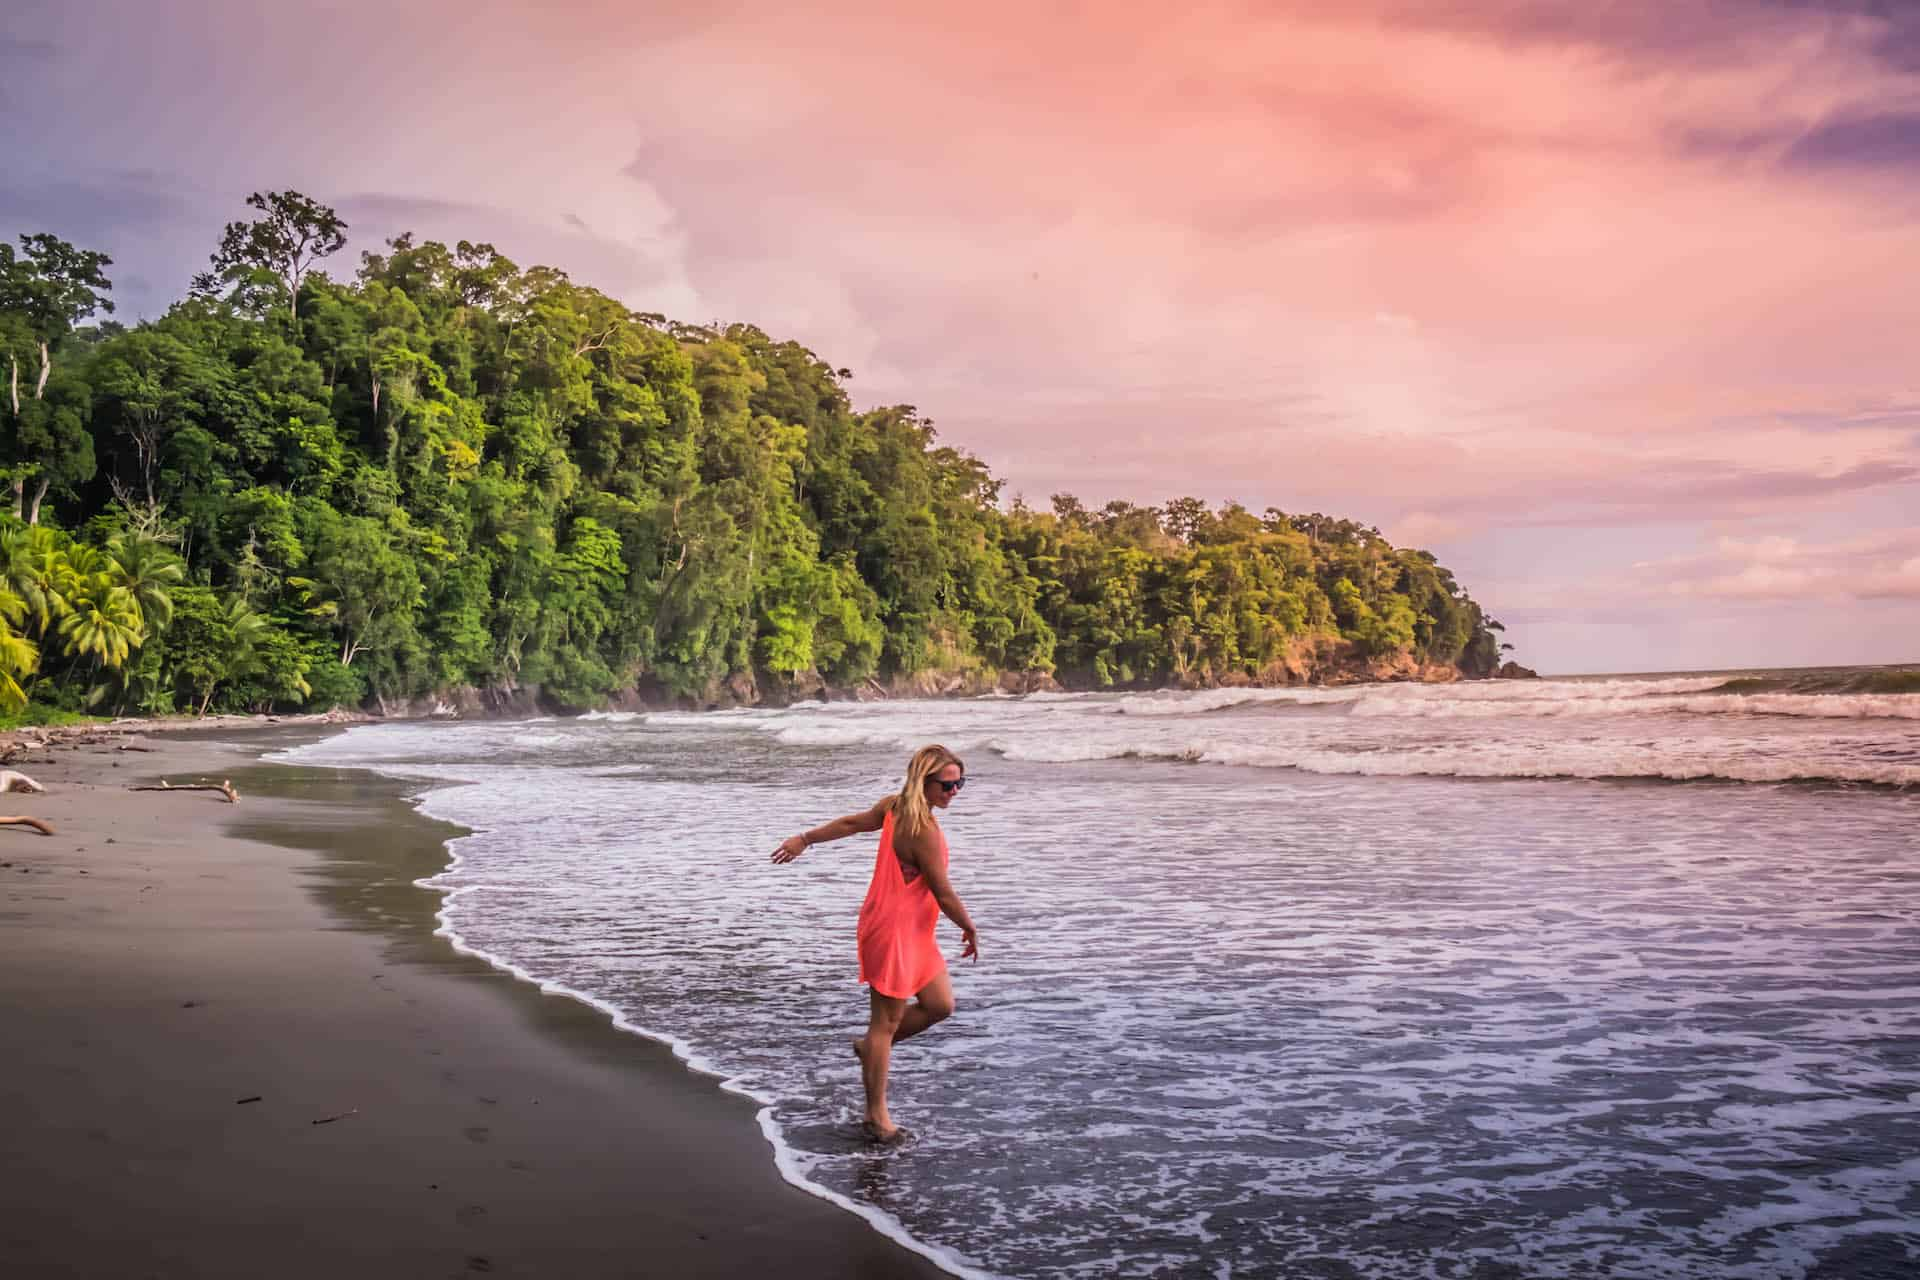 Travel in Costa Rica - Natasha Alden on Beach